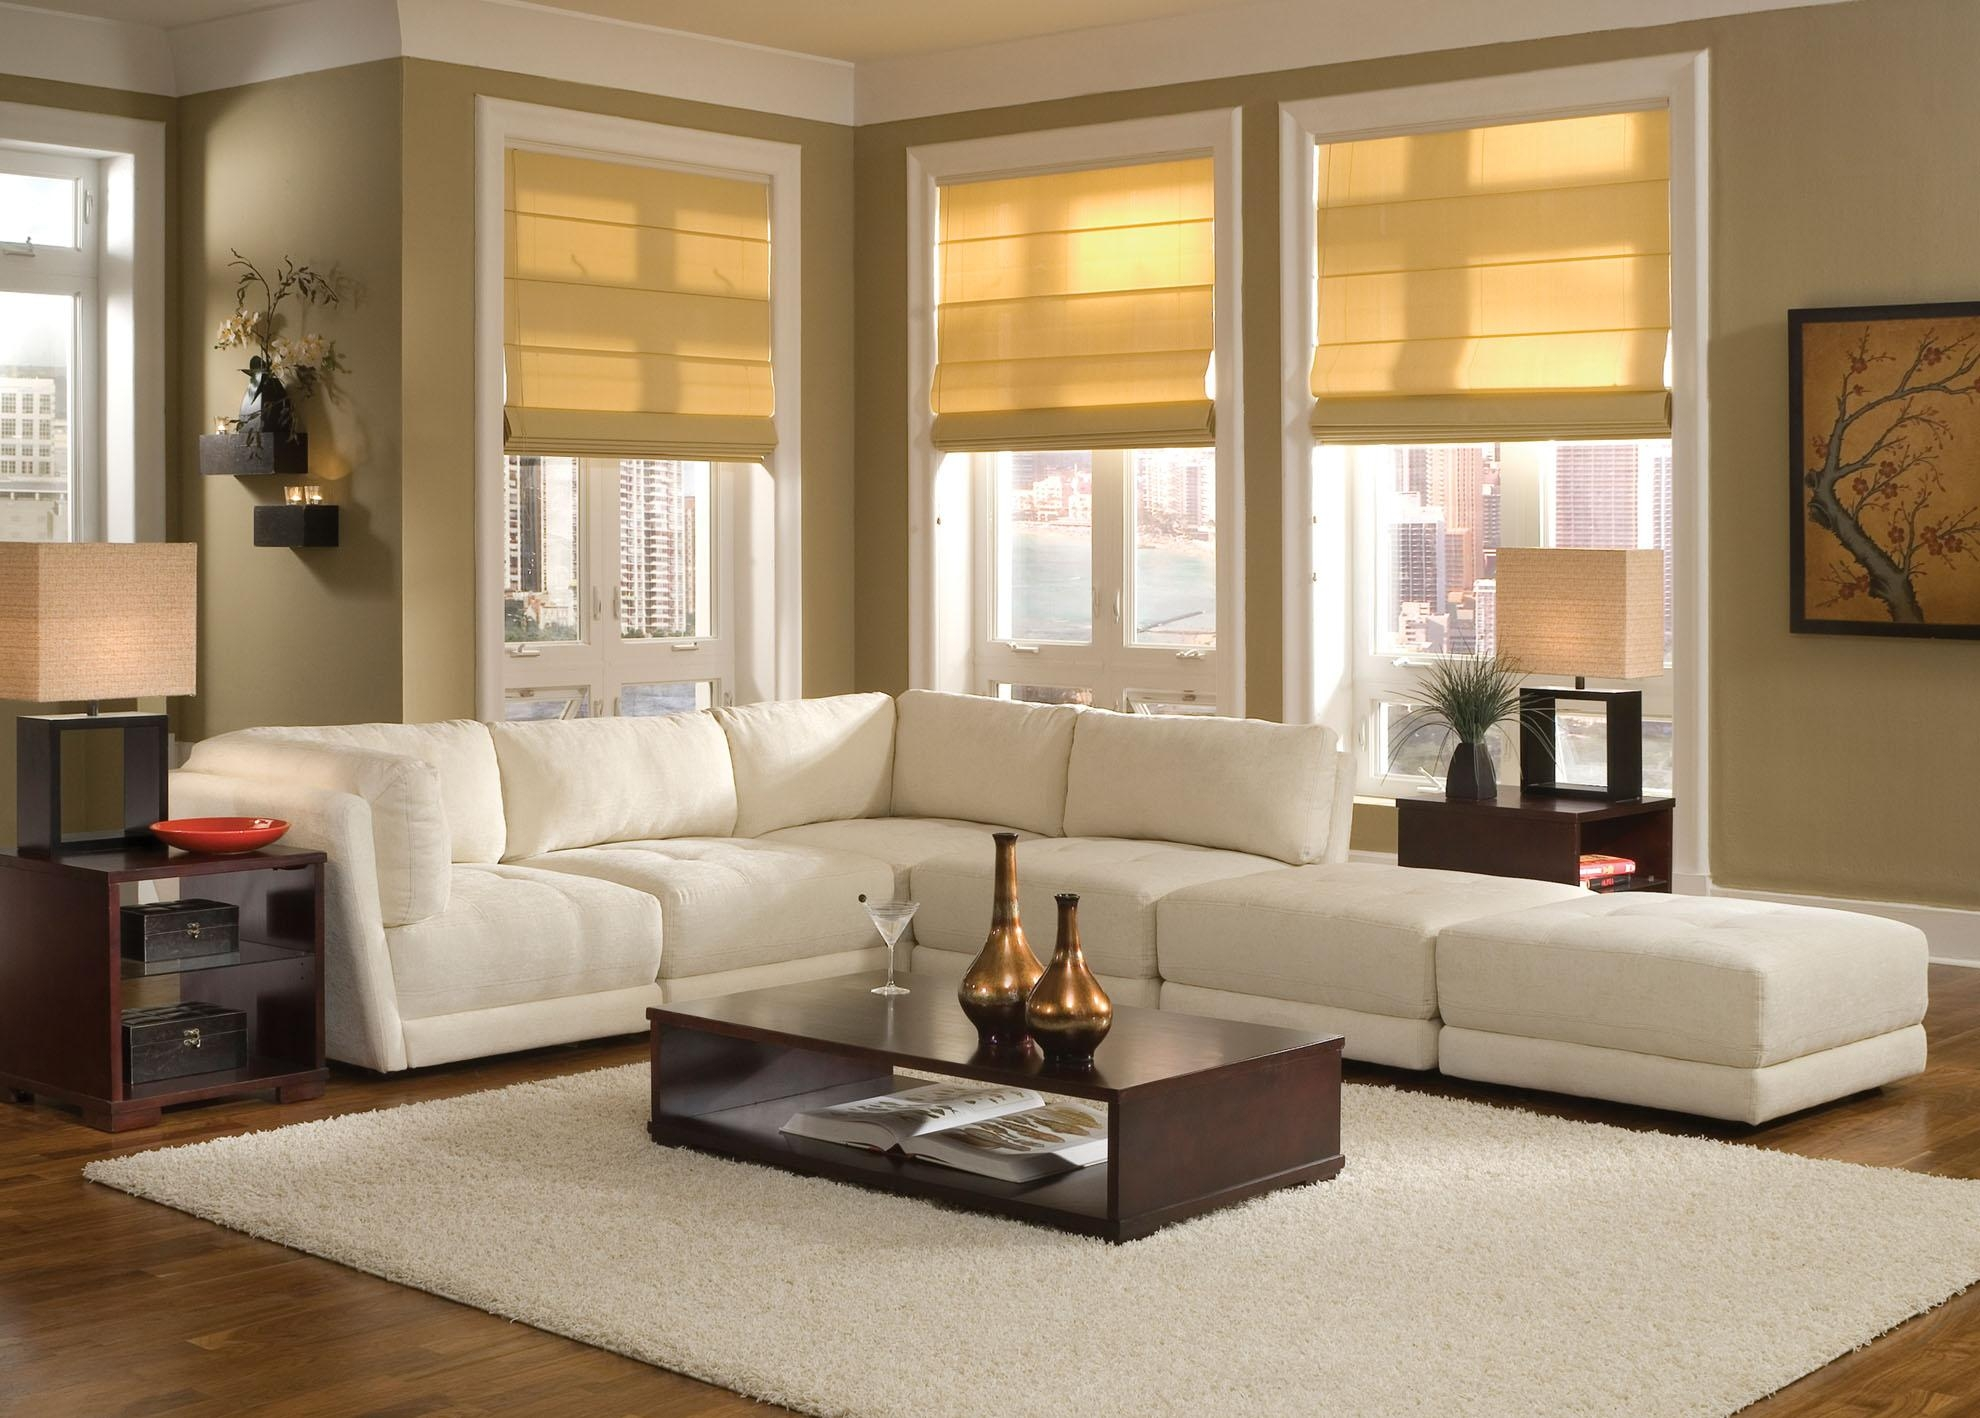 Couches For Small Living Rooms Living Room Design And Living Room Inside Sectional Ideas For Small Rooms (Image 7 of 20)